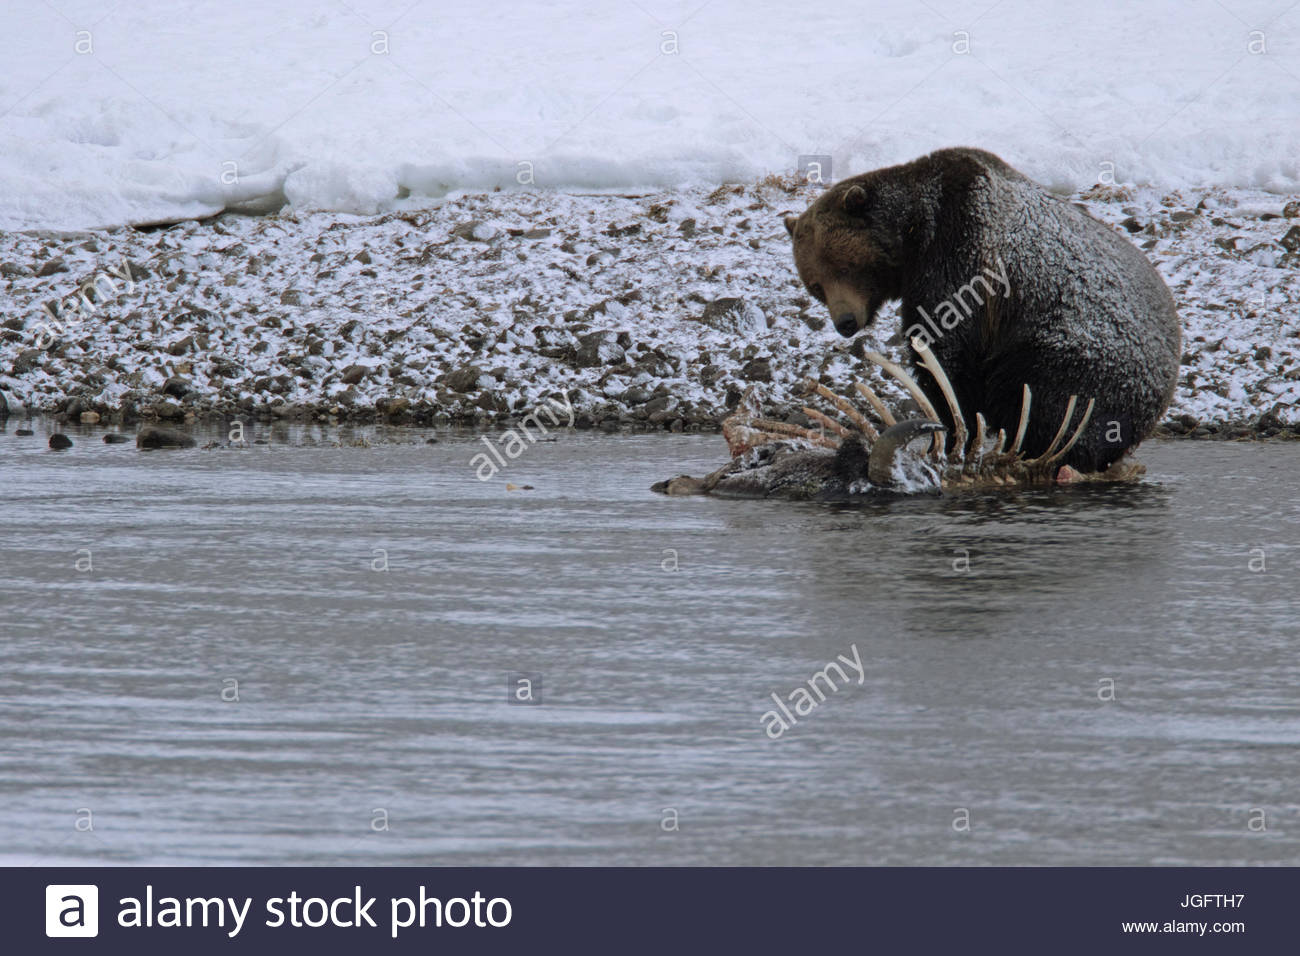 A grizzly bear, Ursus arctos horribilis, feeds on a bison carcass in the Yellowstone River. - Stock Image